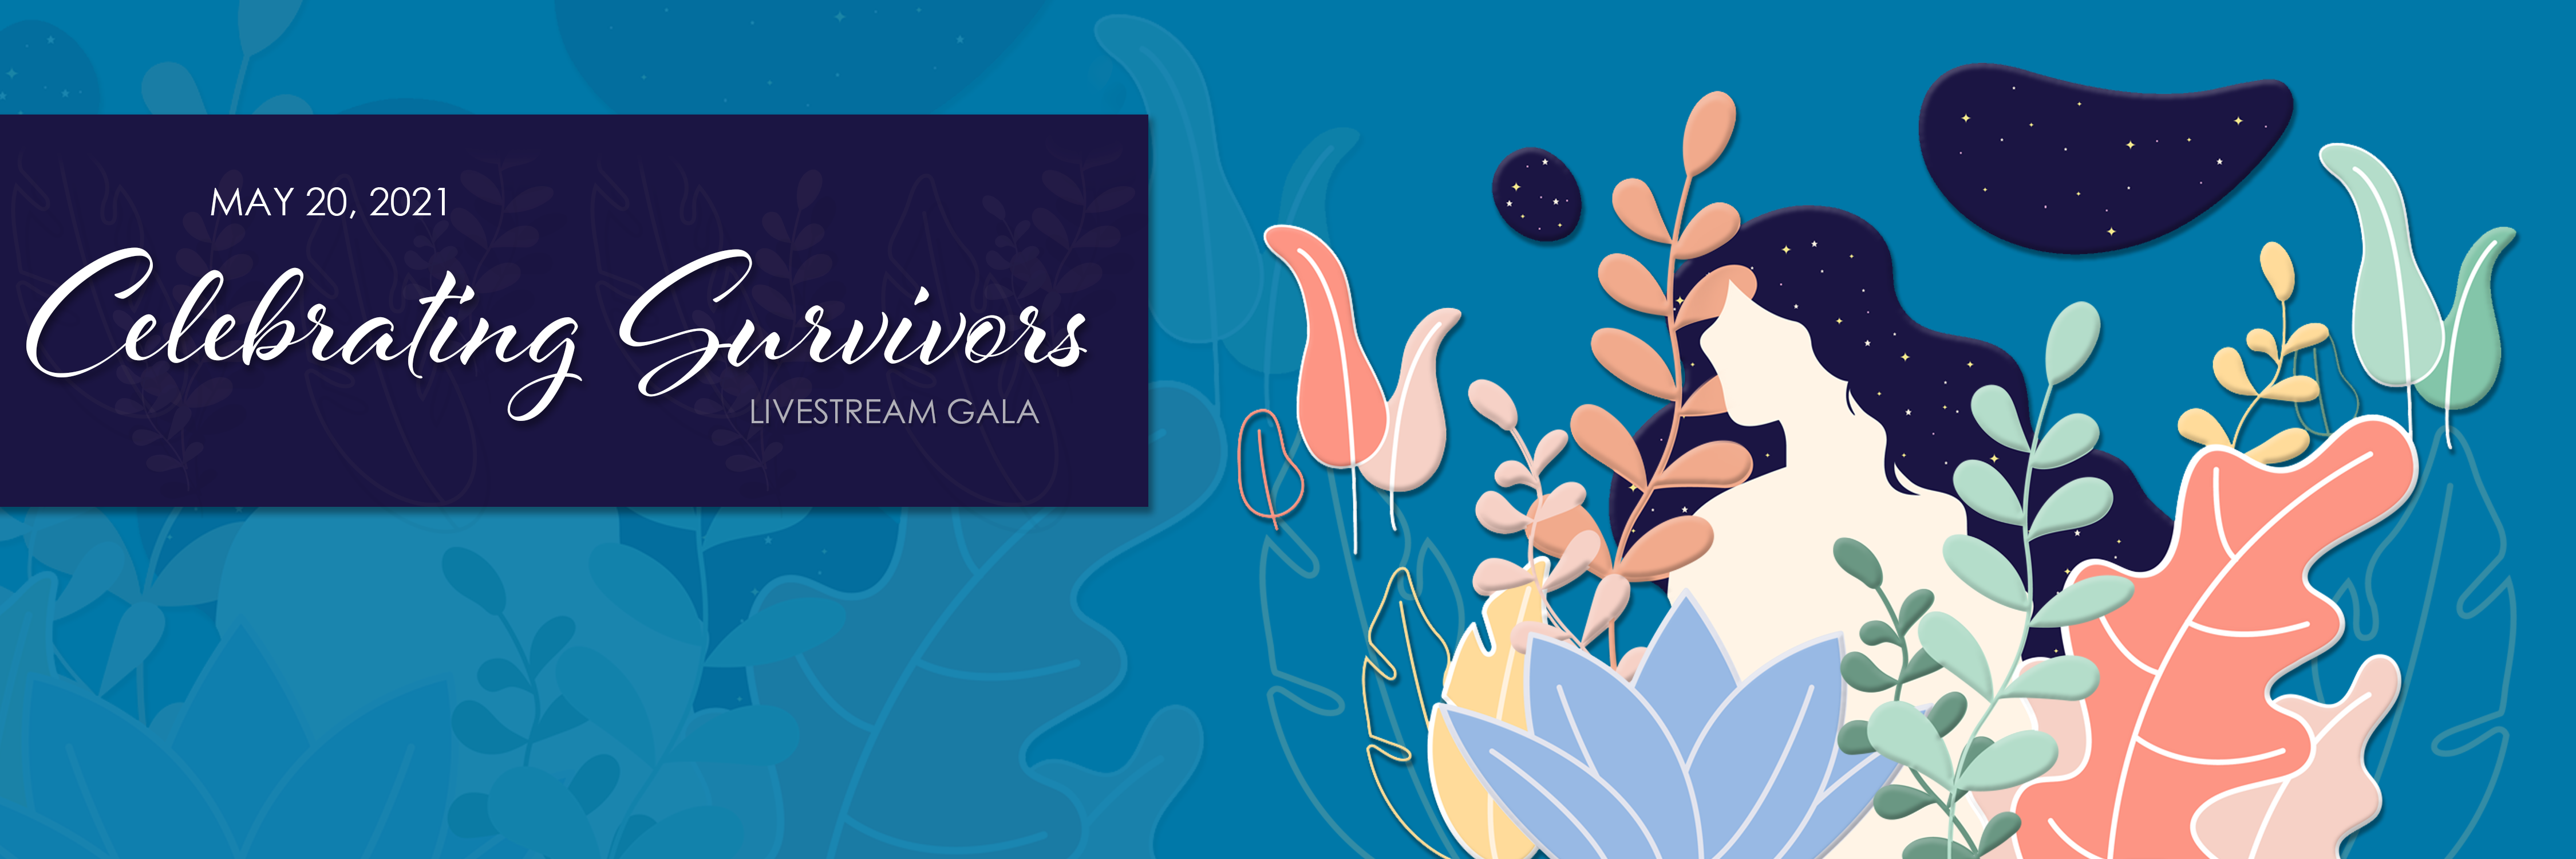 Celebrating Survivors Livestream Gala May 20, 2021